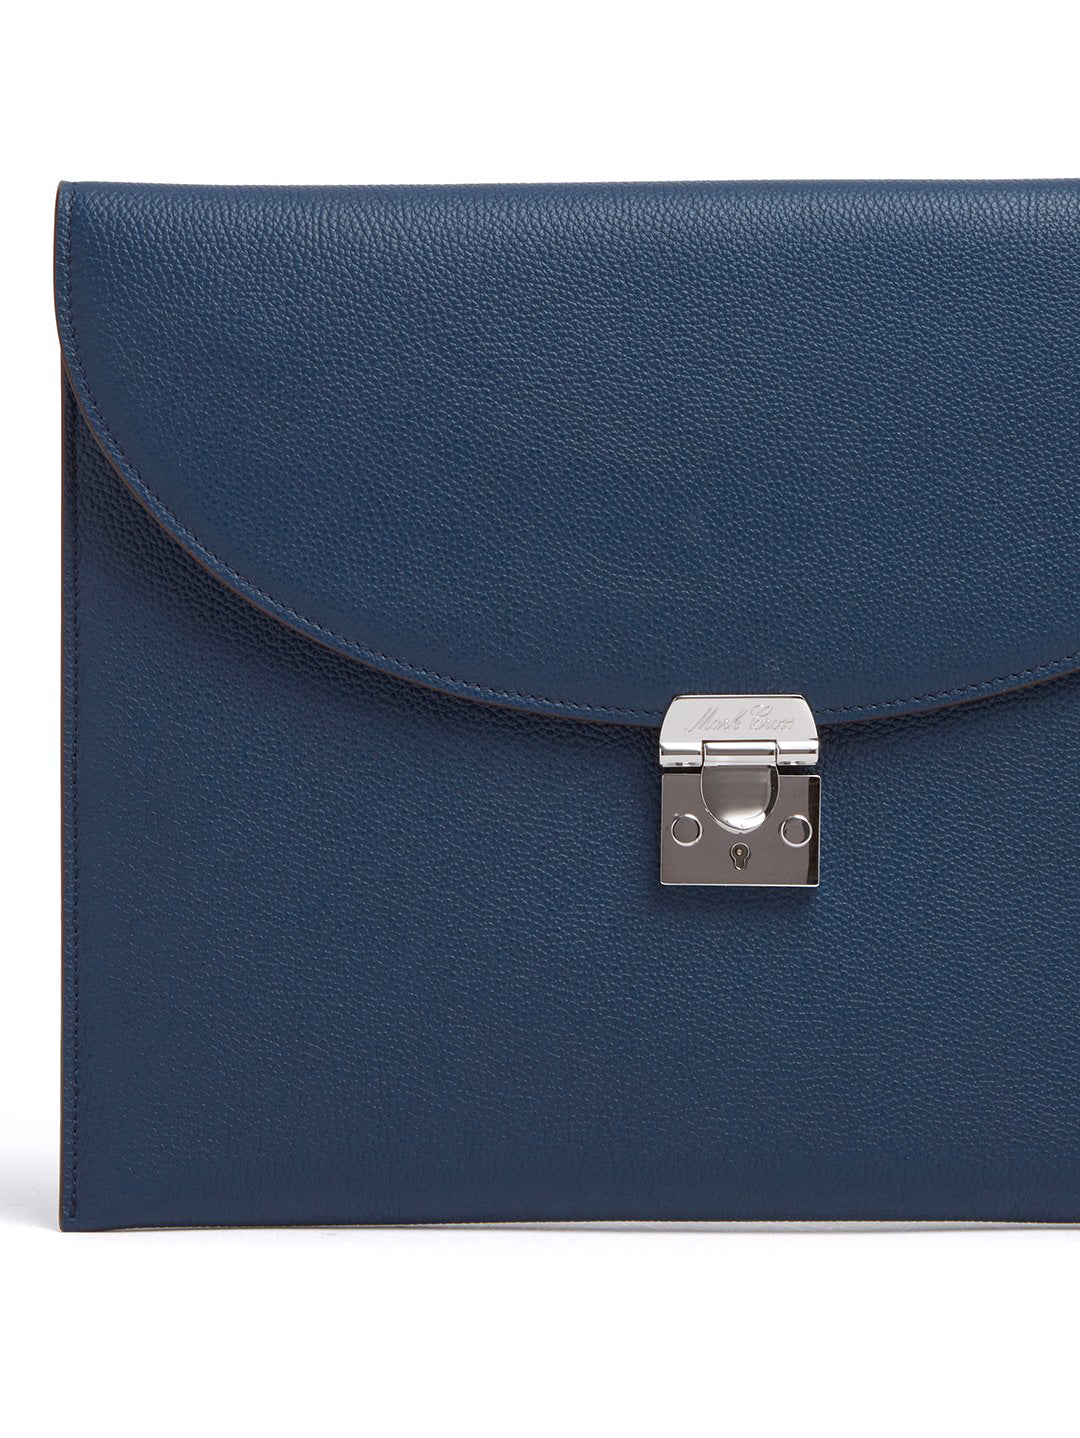 Mark Cross Diver Leather Folio Tumbled Grain Navy Detail